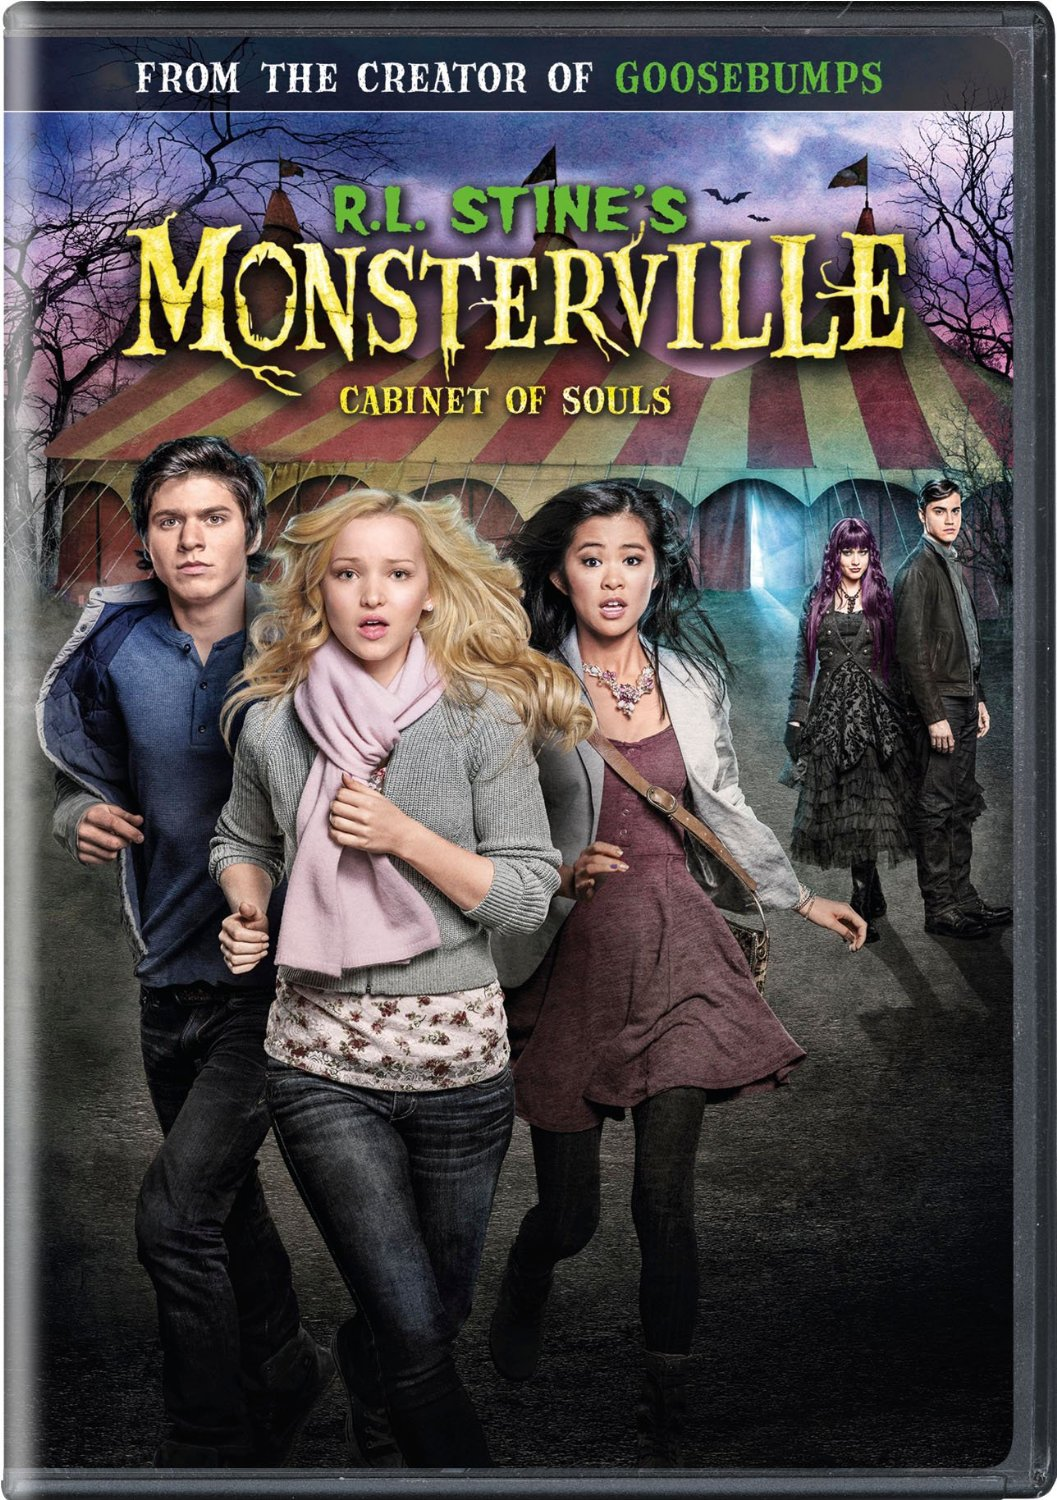 Monsterville Cabinet of Souls DVD Review